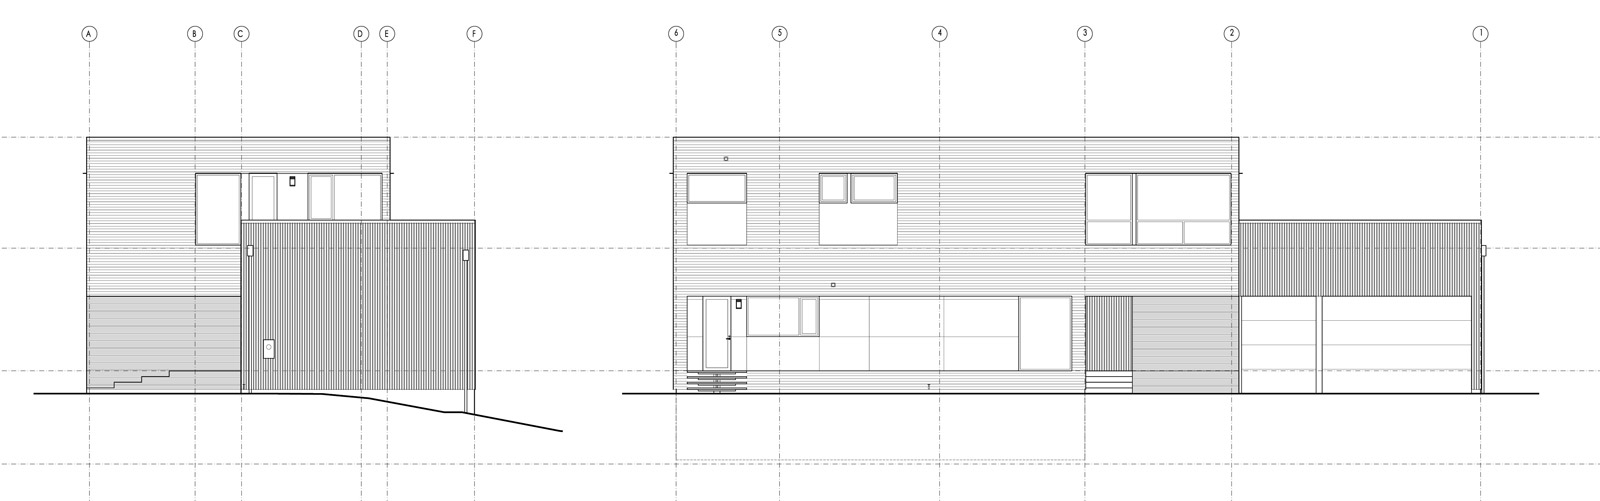 BUILD-LLC-Elevations-01